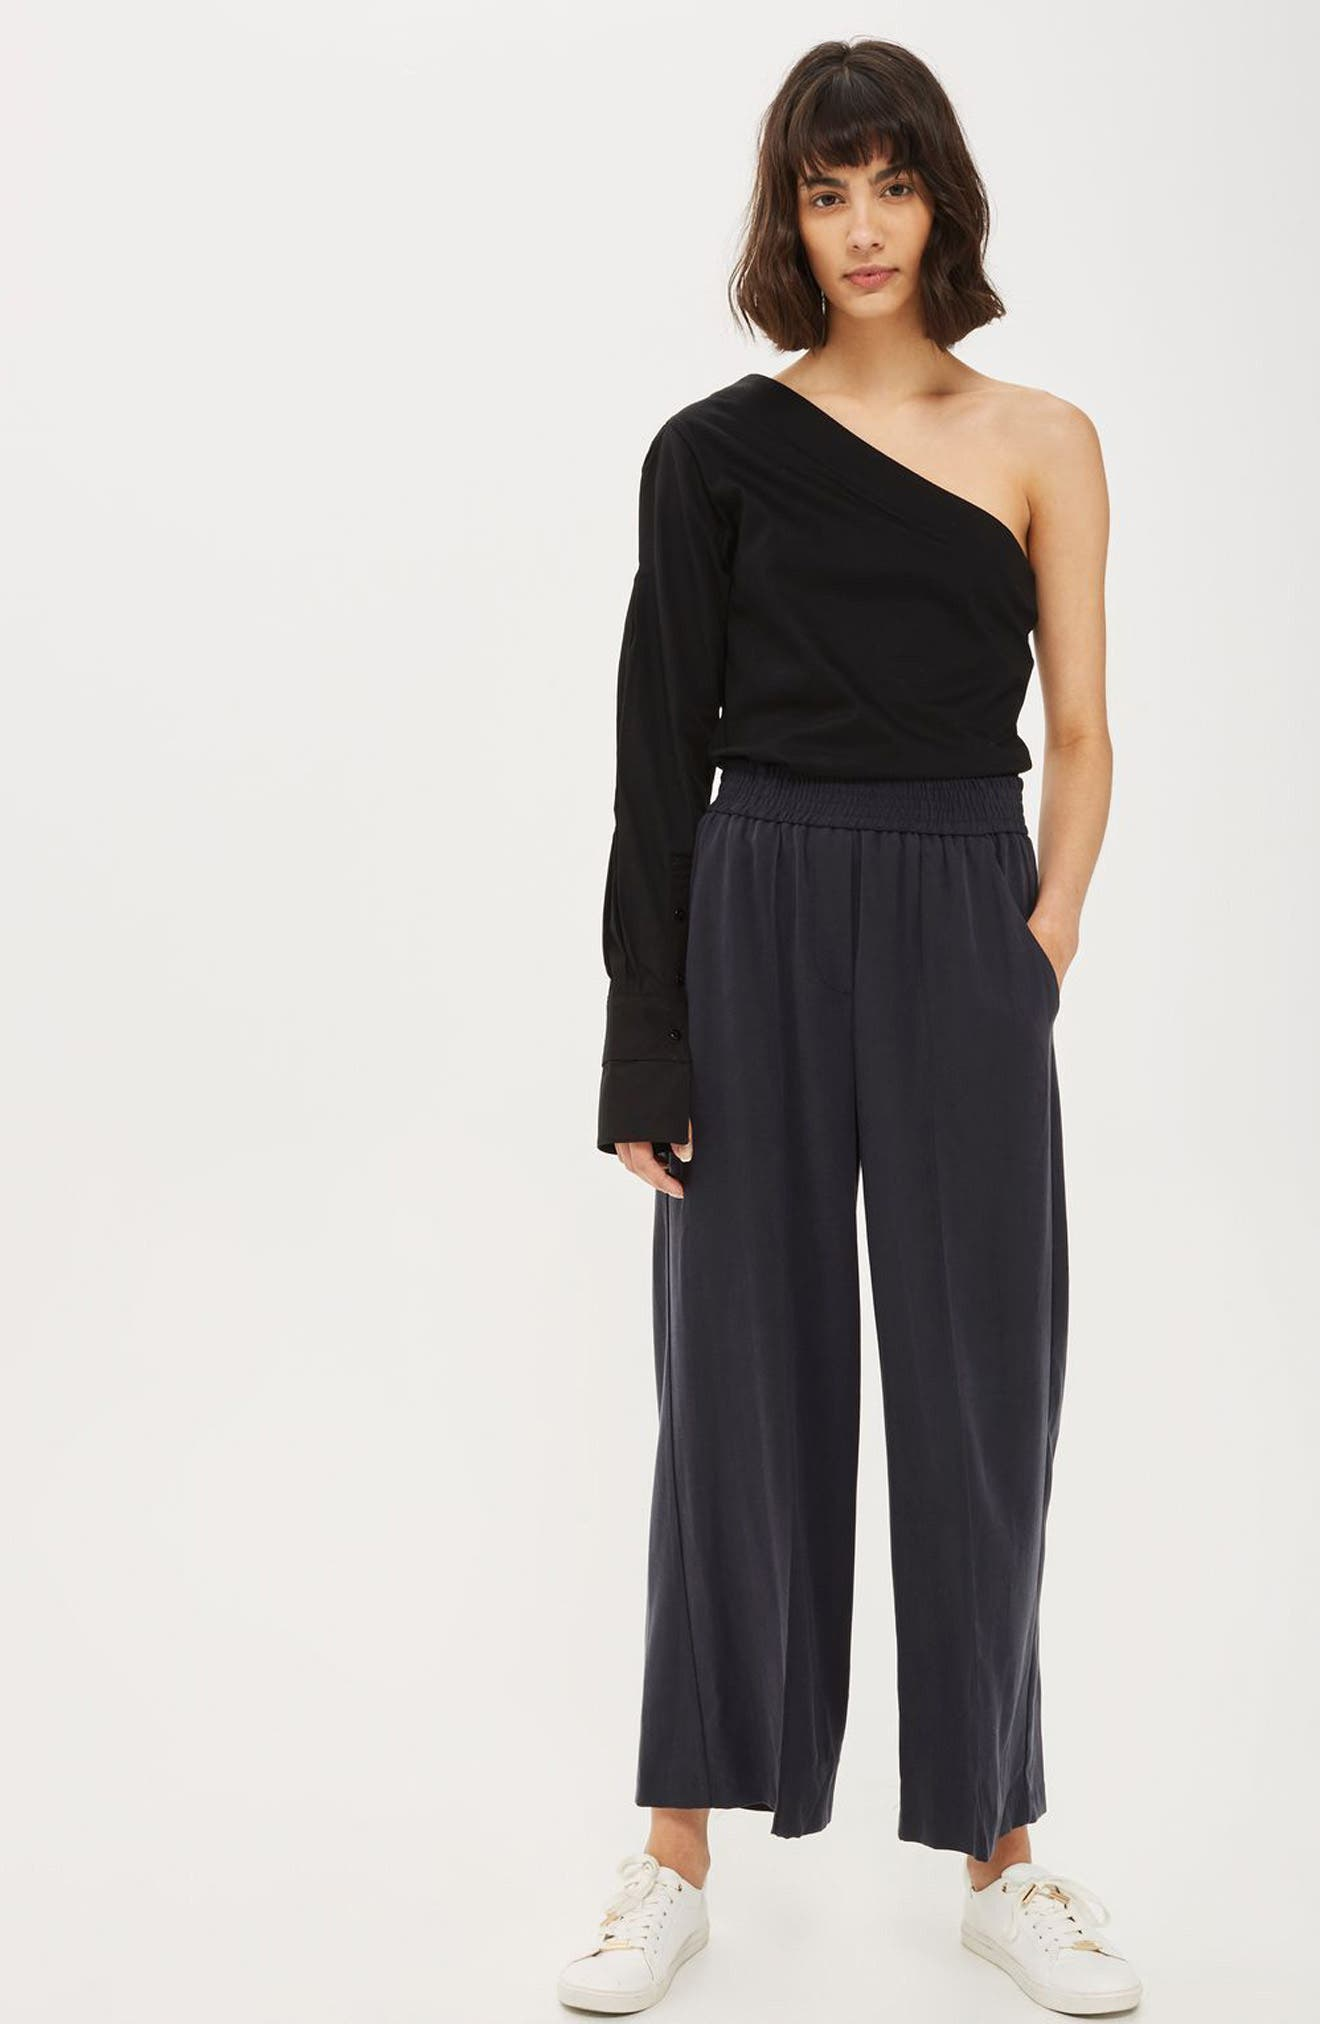 Topshop Shirt & Trousers Outfit with Accessories